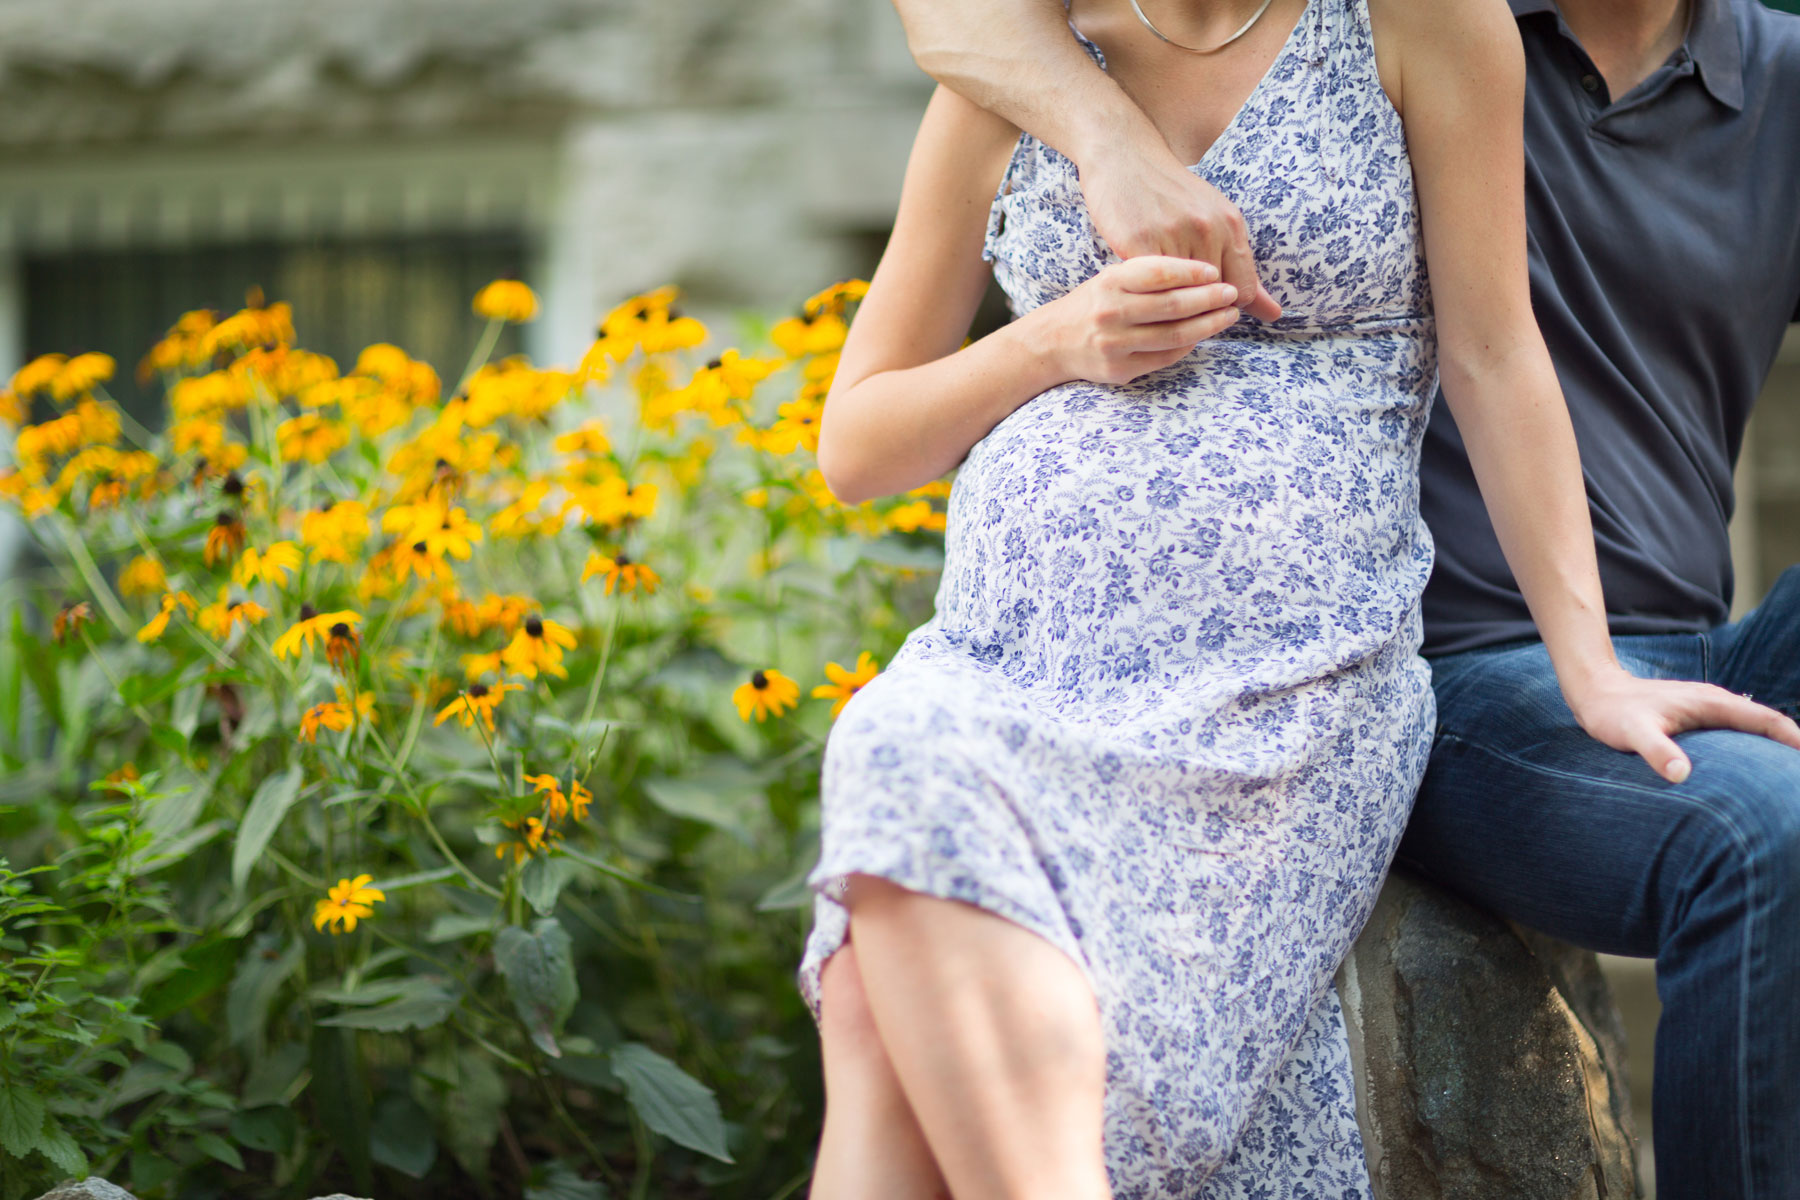 pregnant-belly-amidst-flowers